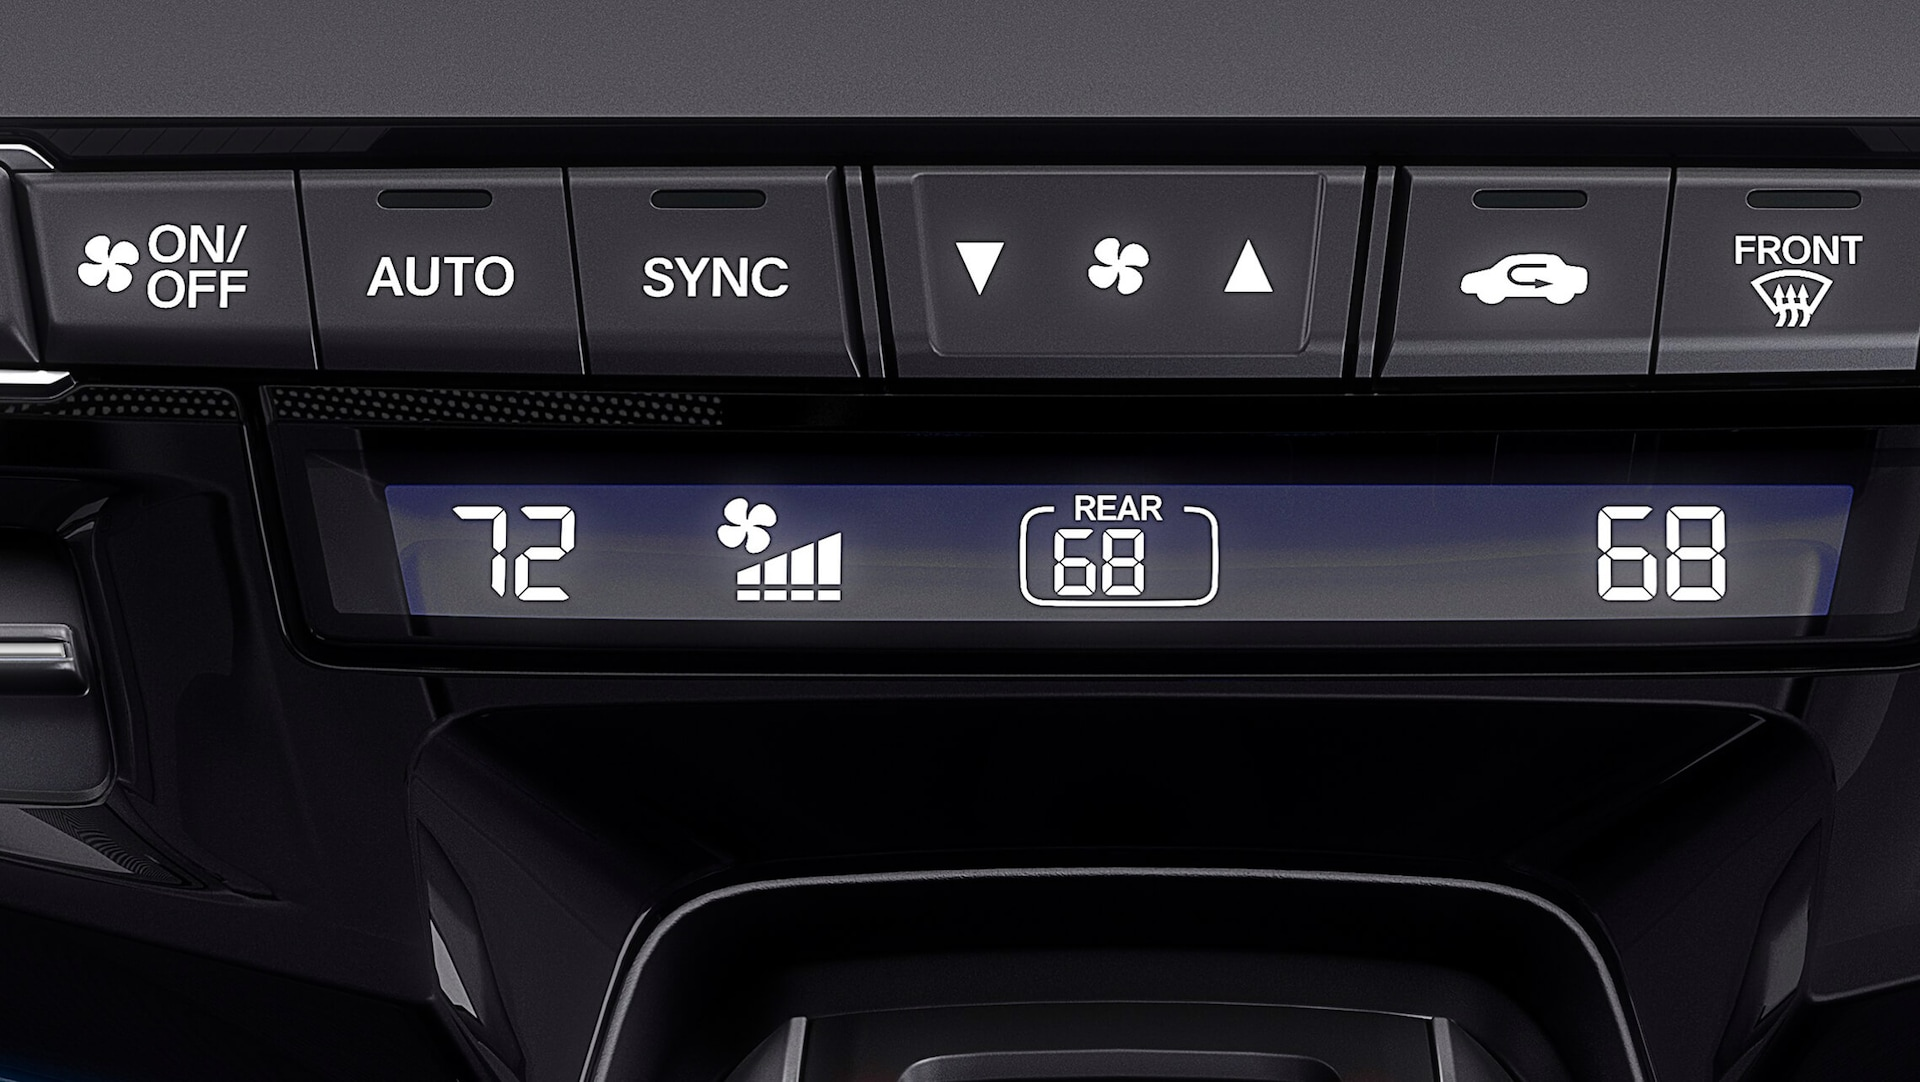 Tri-Zone Automatic Climate Control detail on the 2022 Honda Odyssey Elite.